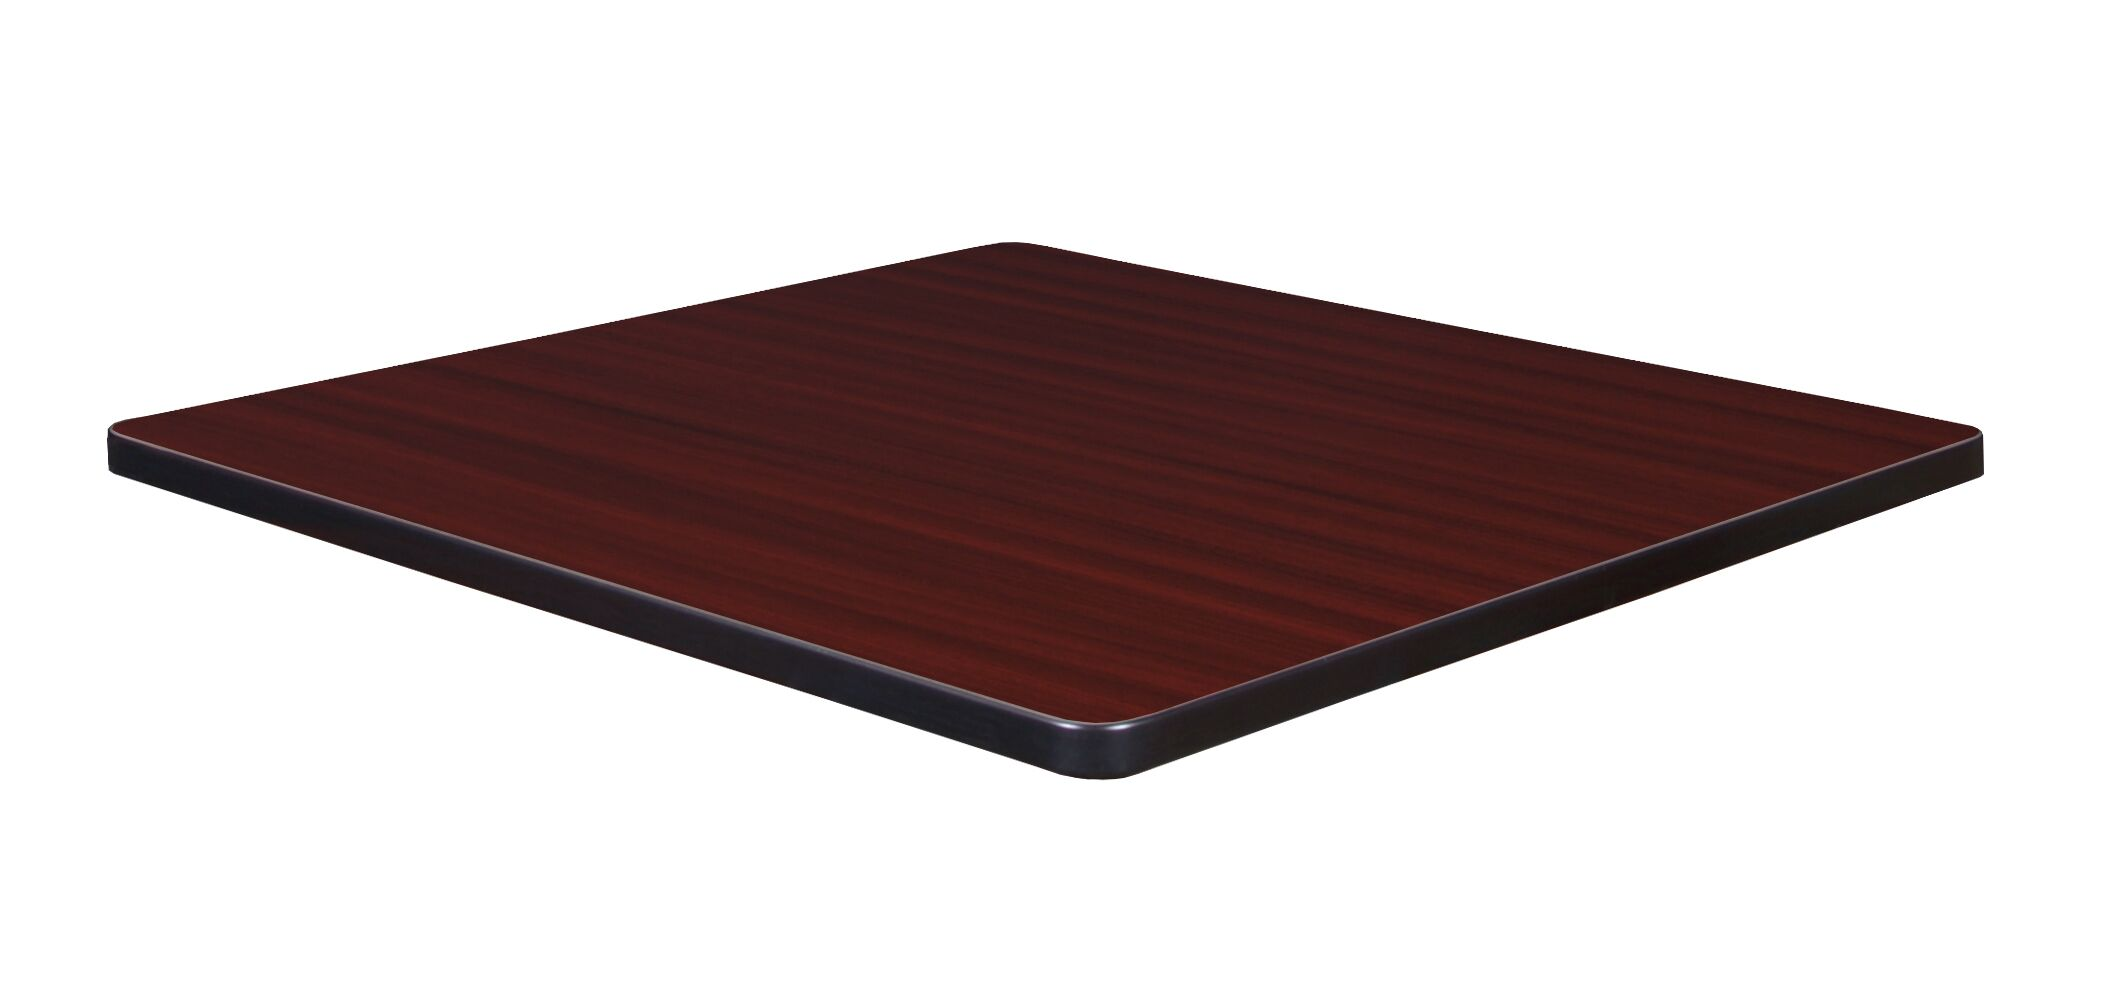 Hassinger Square Laminate Table Top Color: Mahogany/Mocha Walnut, Size: 1